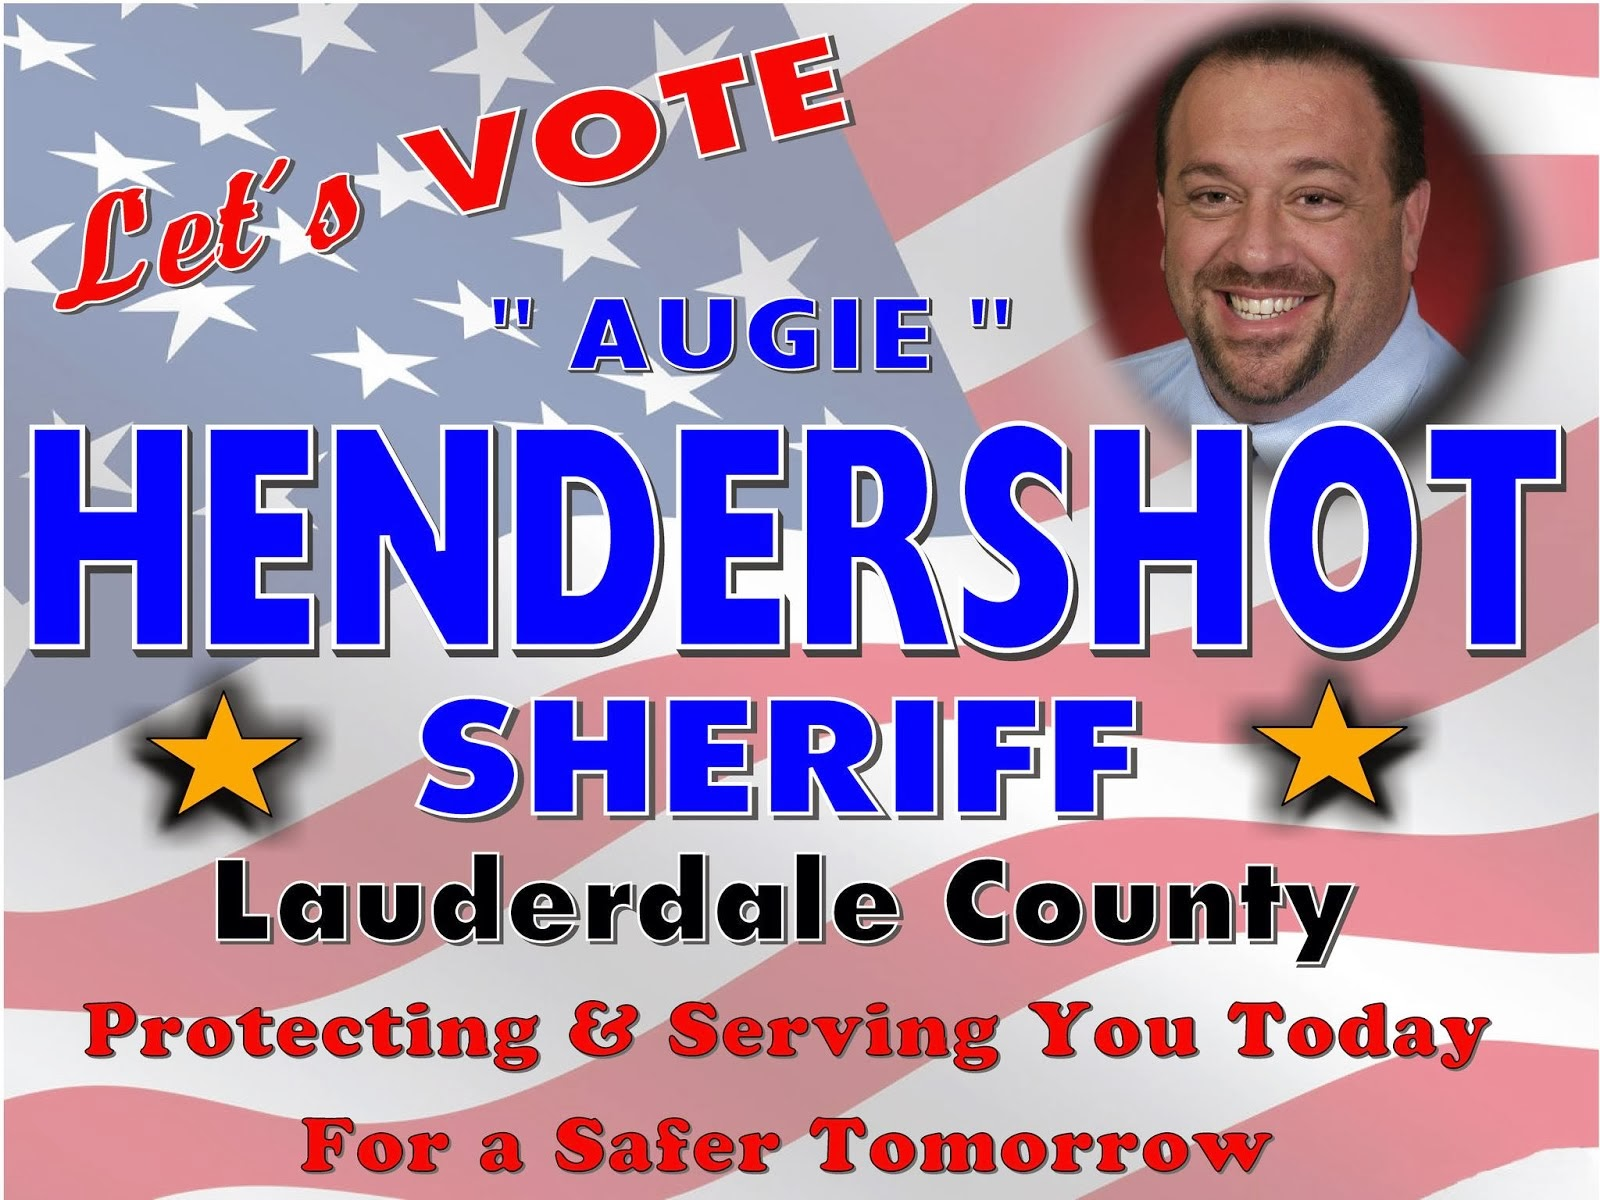 Vote Augie Hendershot for Lauderdale County Sheriff